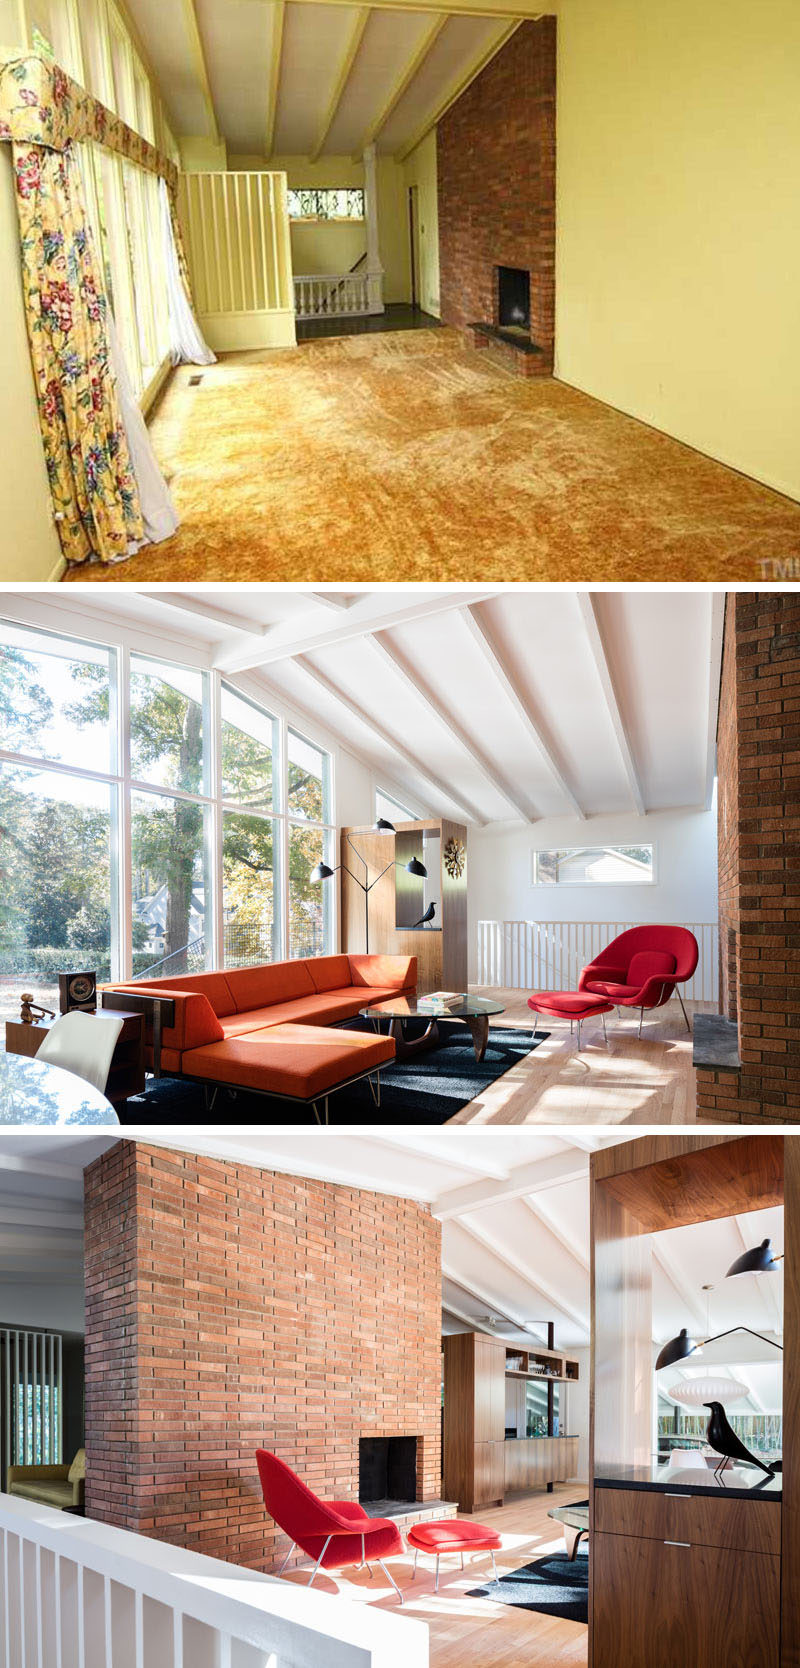 Gold colored carpets, yellow walls and floral window coverings were removed during the renovation of this house, and replace with a bright white interior and wood flooring. The white walls and ceiling help to make the interior feel larger and brighter, as well as creating a continuous color palette throughout the home. The walls around the brick fireplace were also removed to create an open interior.